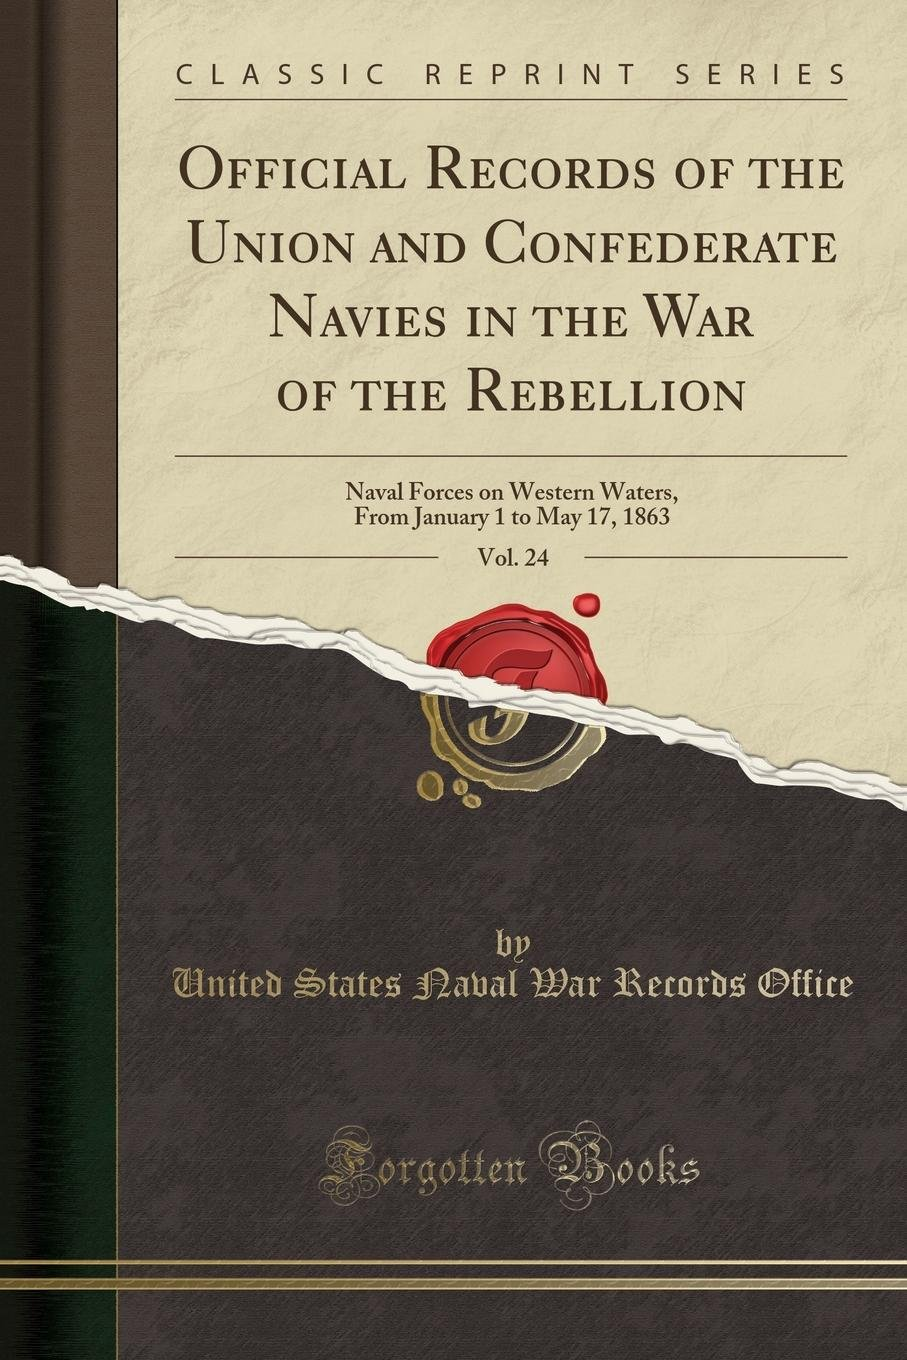 Read Online Official Records of the Union and Confederate Navies in the War of the Rebellion, Vol. 24: Naval Forces on Western Waters, From January 1 to May 17, 1863 (Classic Reprint) ebook